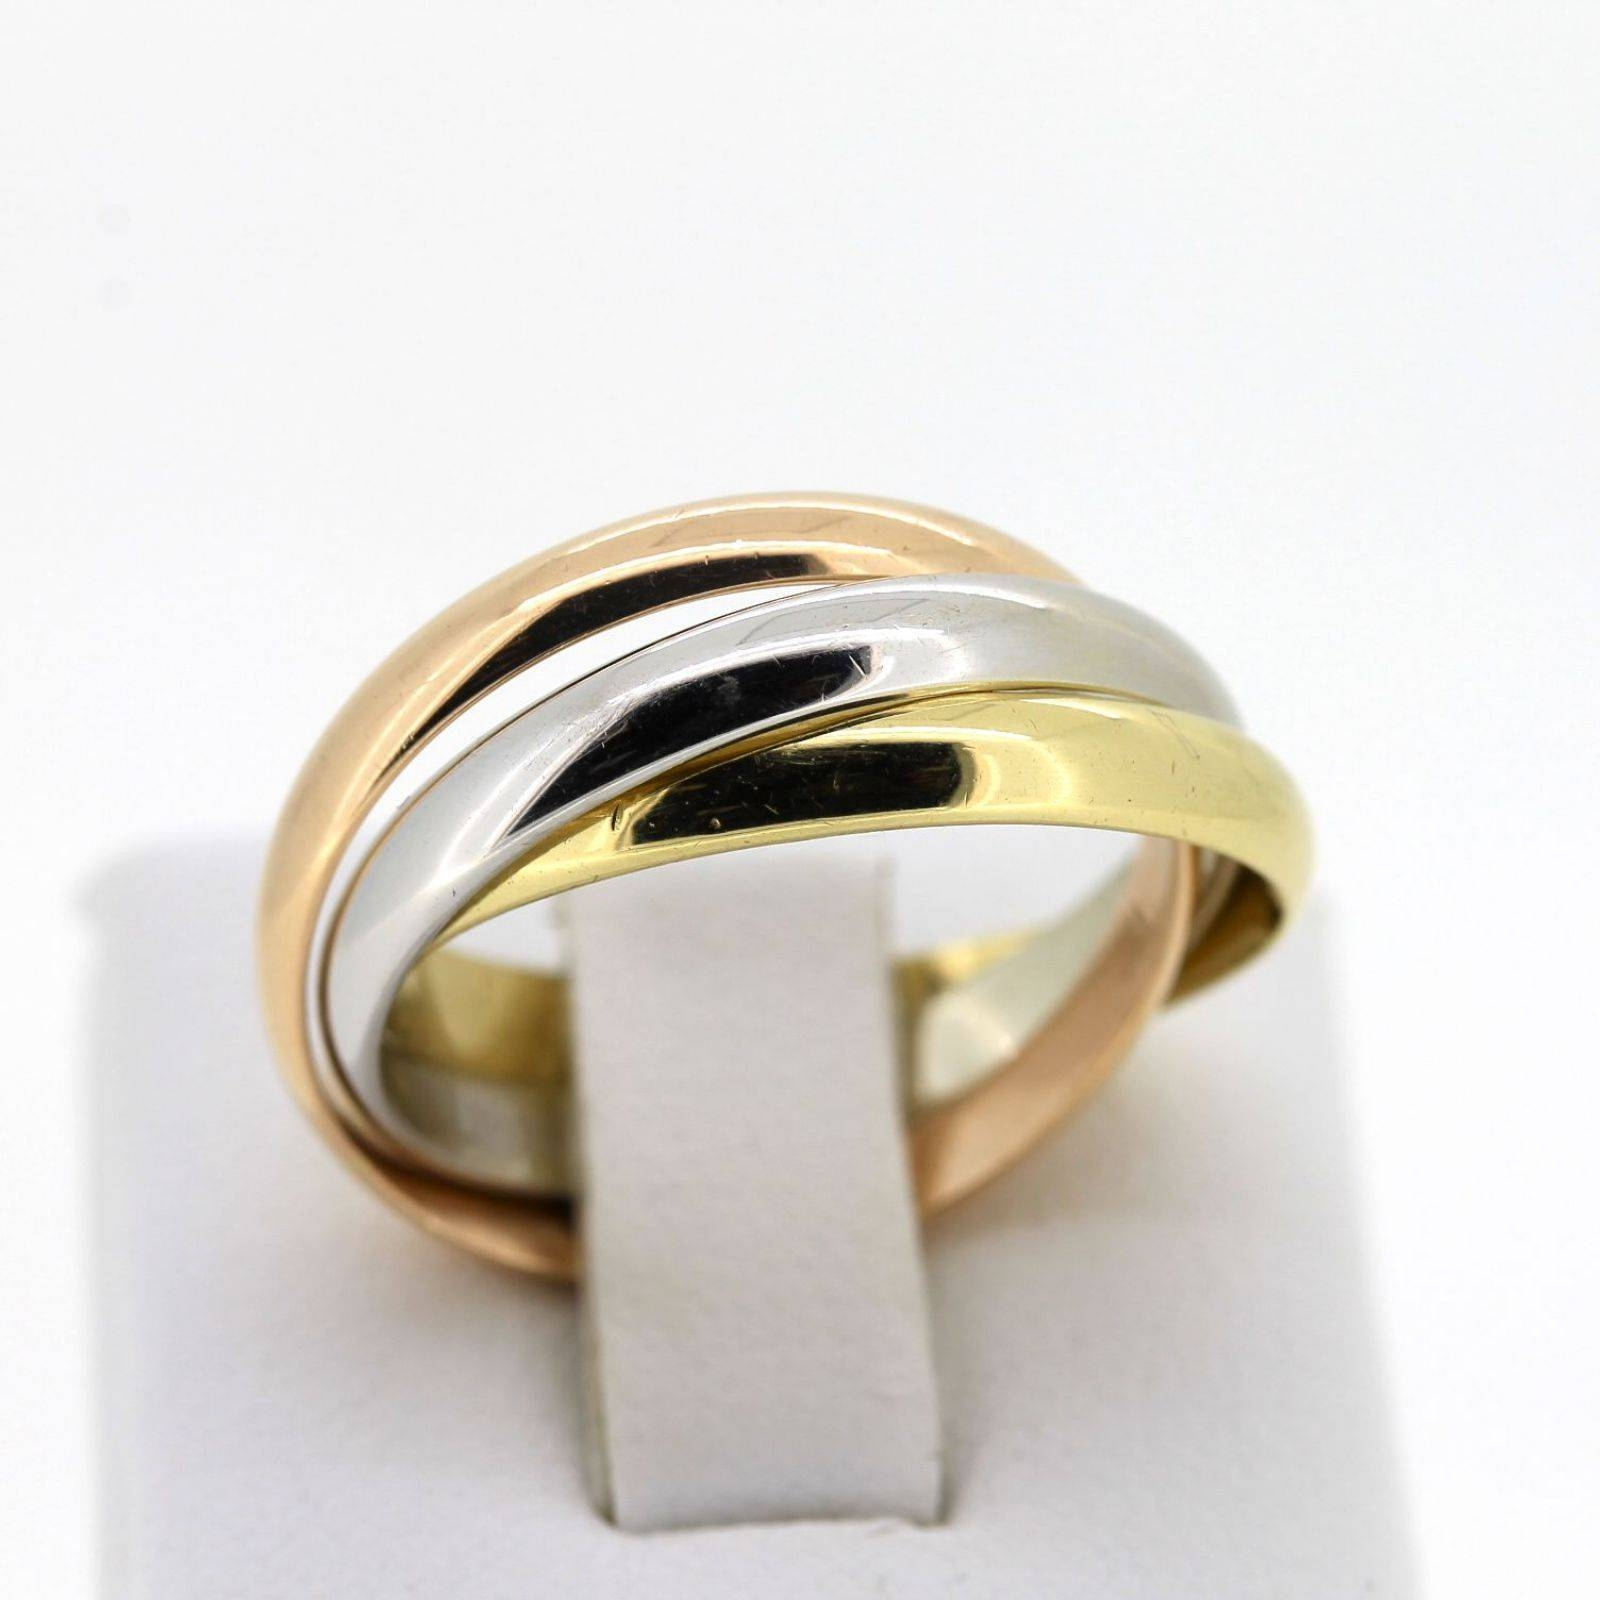 Satisfying Mens Wedding Bands Cartier Love Tags : Wedding Rings Intended For Mens Engagement Rings Cartier (View 11 of 15)